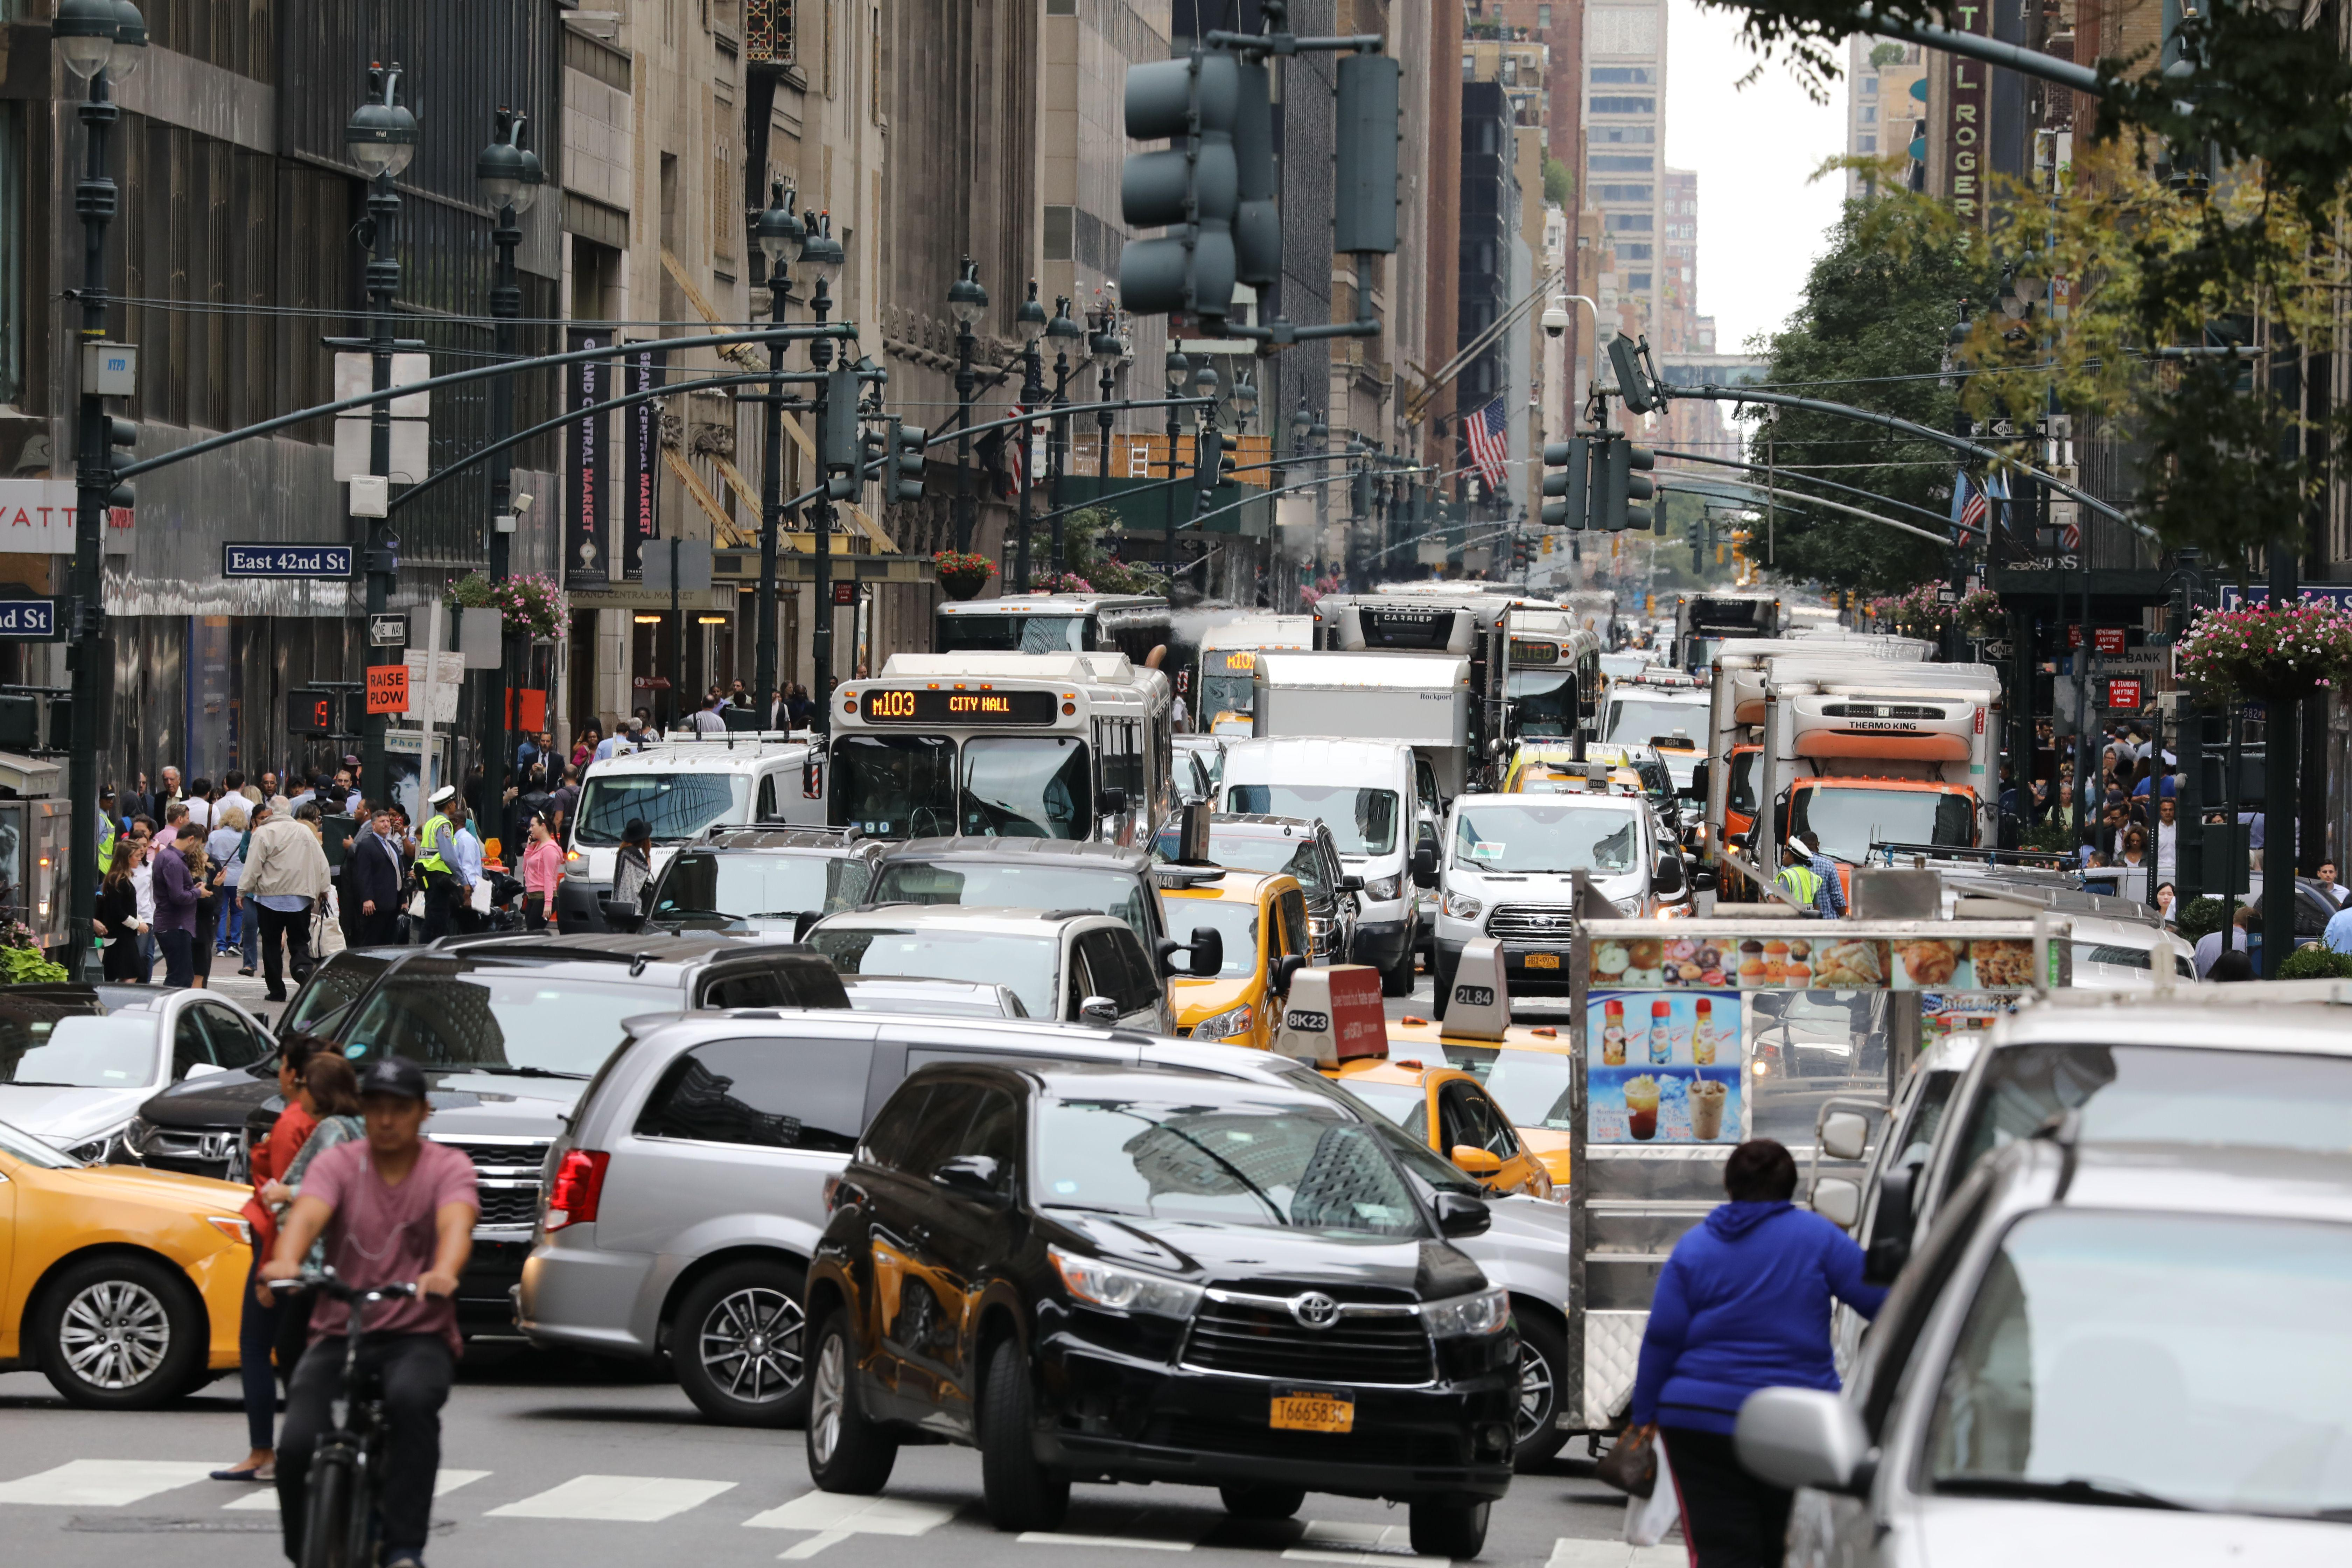 A picture taken on September 18, 2017 shows heavy traffic in the streets of New York the day before the opening of the 72nd session of the United Nations General Assembly. / AFP PHOTO / LUDOVIC MARIN        (Photo credit should read LUDOVIC MARIN/AFP/Getty Images)